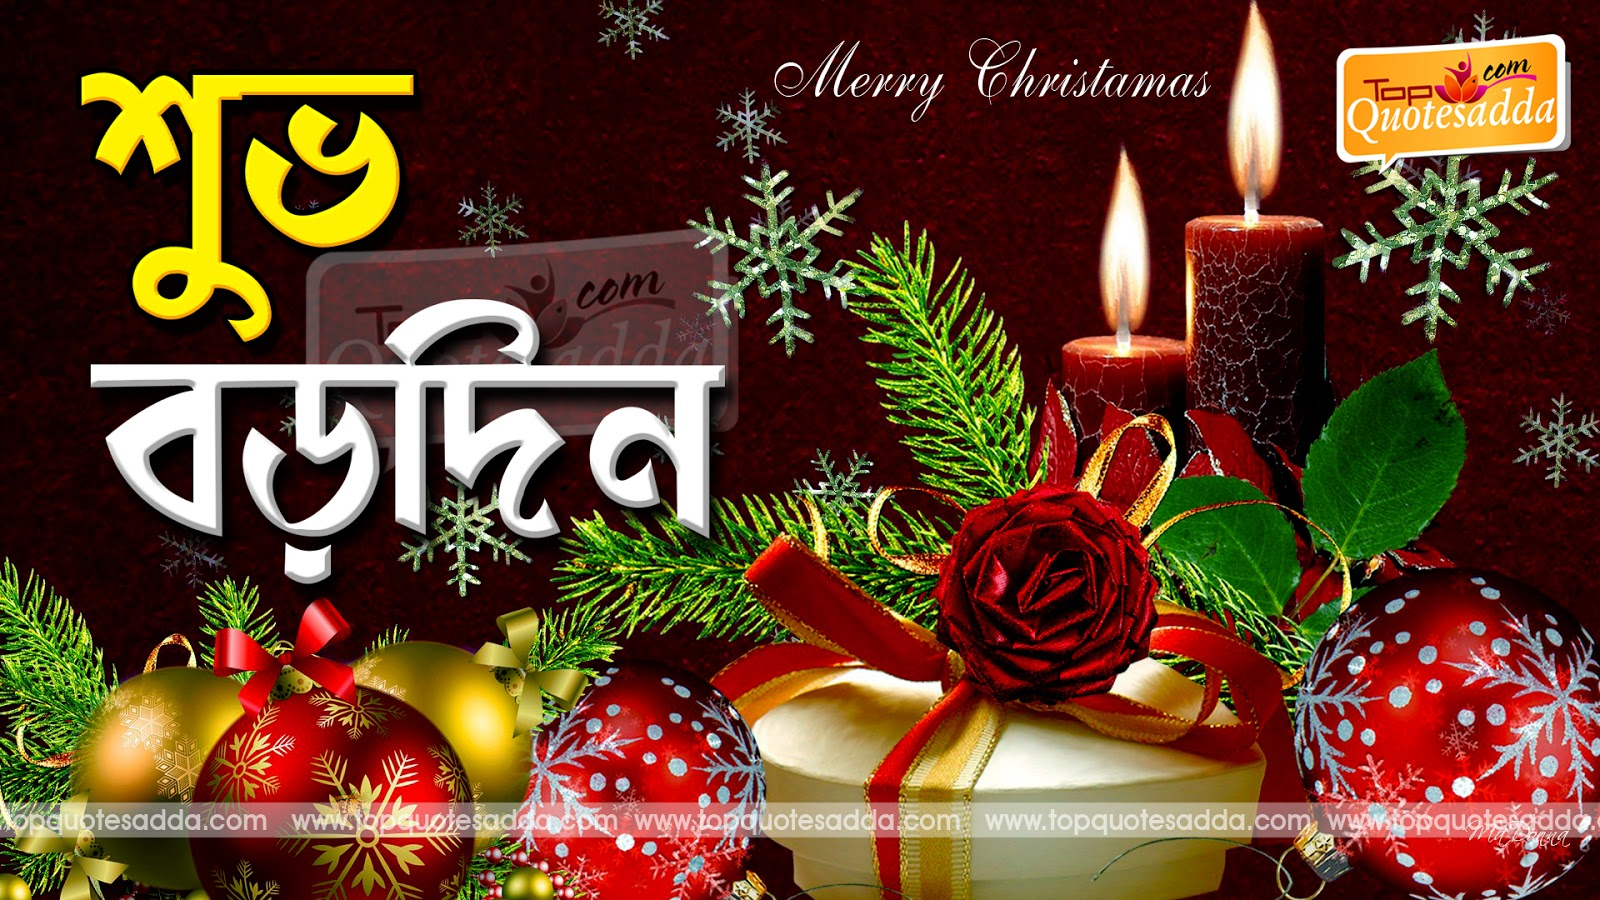 Merry Christmas Sms Messages In Bengali | Perfect Letter